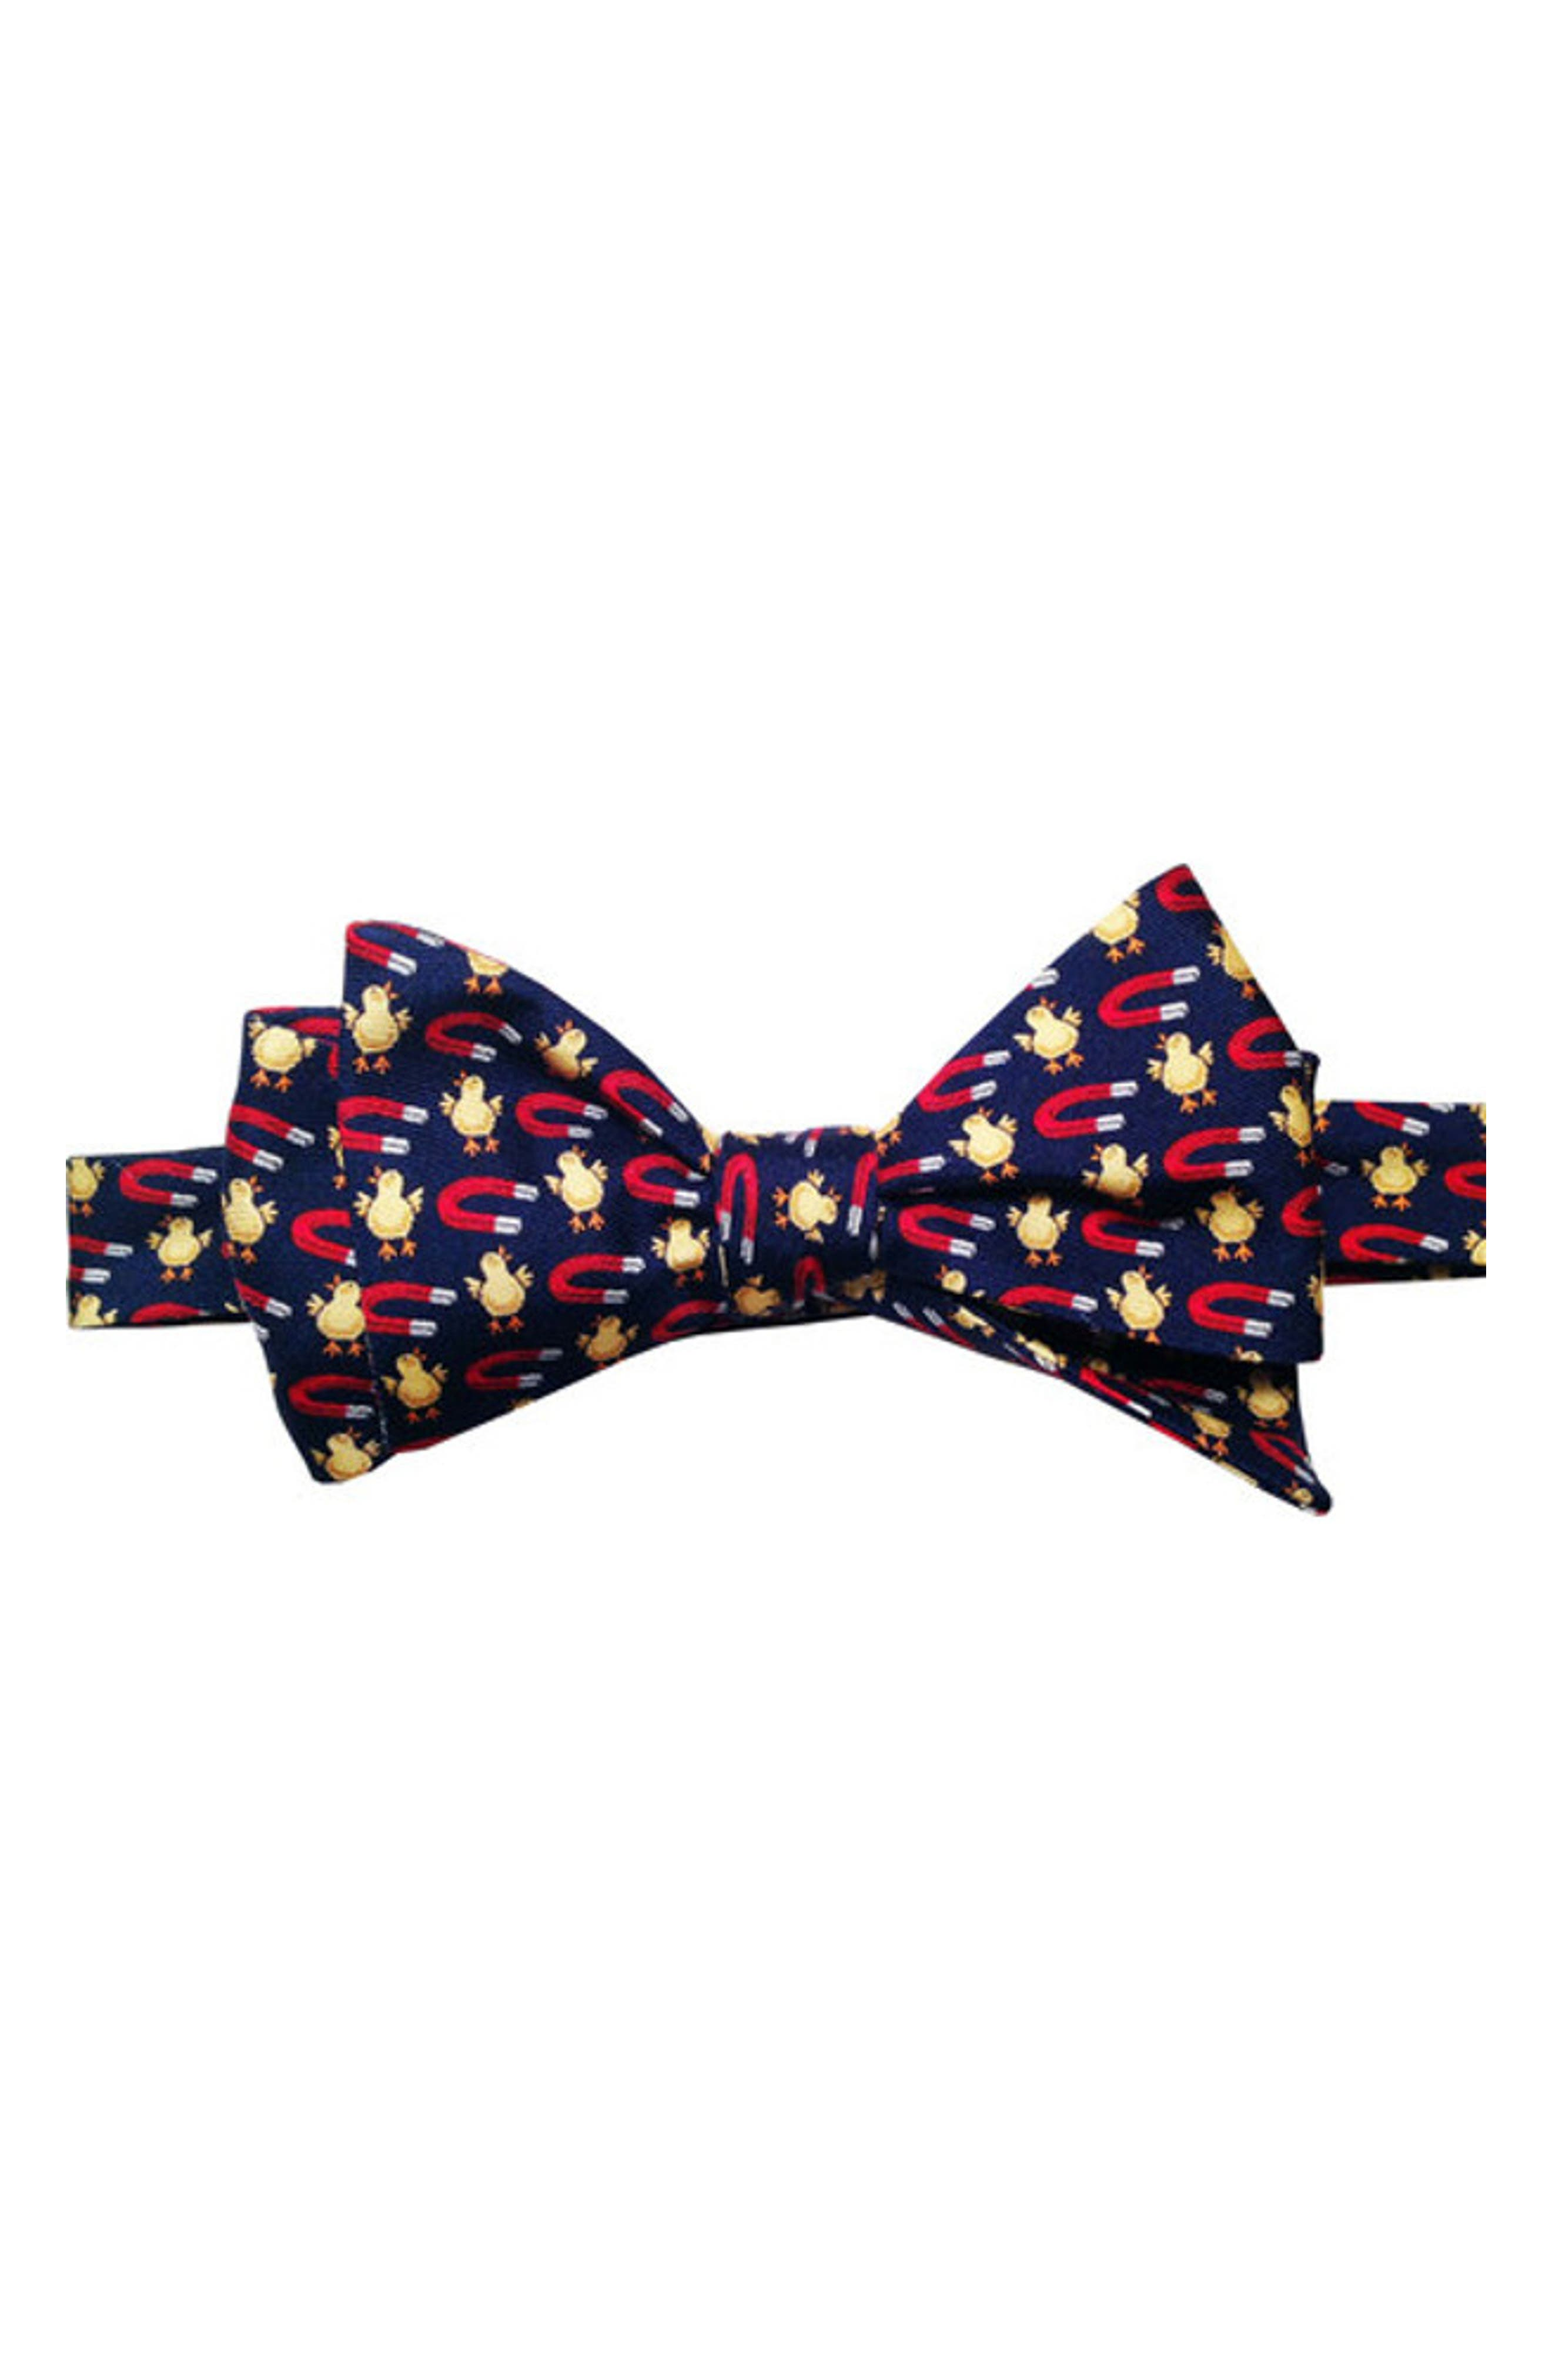 Chick Magnet Silk Bow Tie,                             Main thumbnail 1, color,                             410